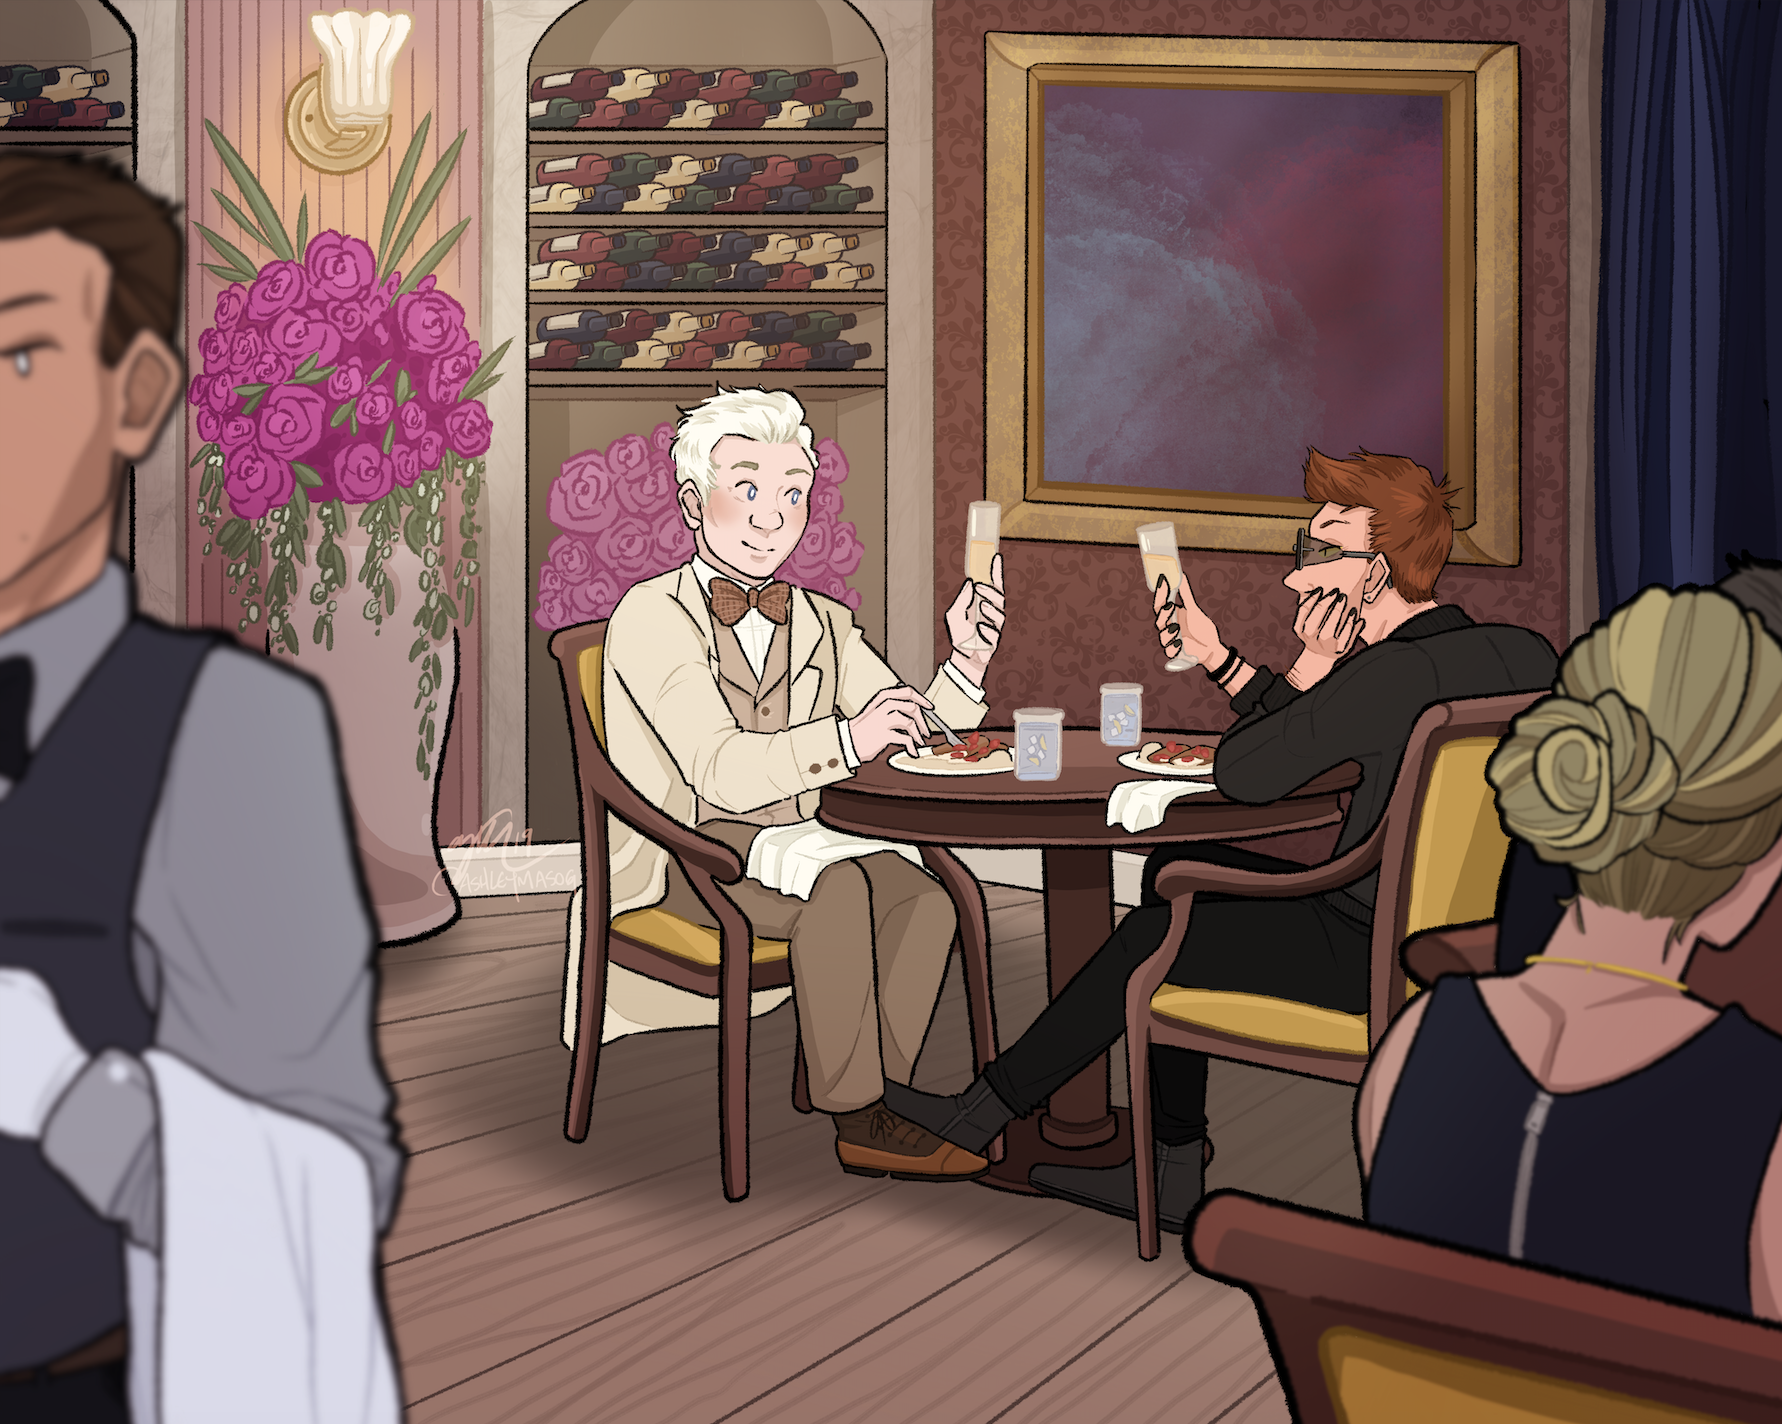 Dining at the Ritz (Good Omens)